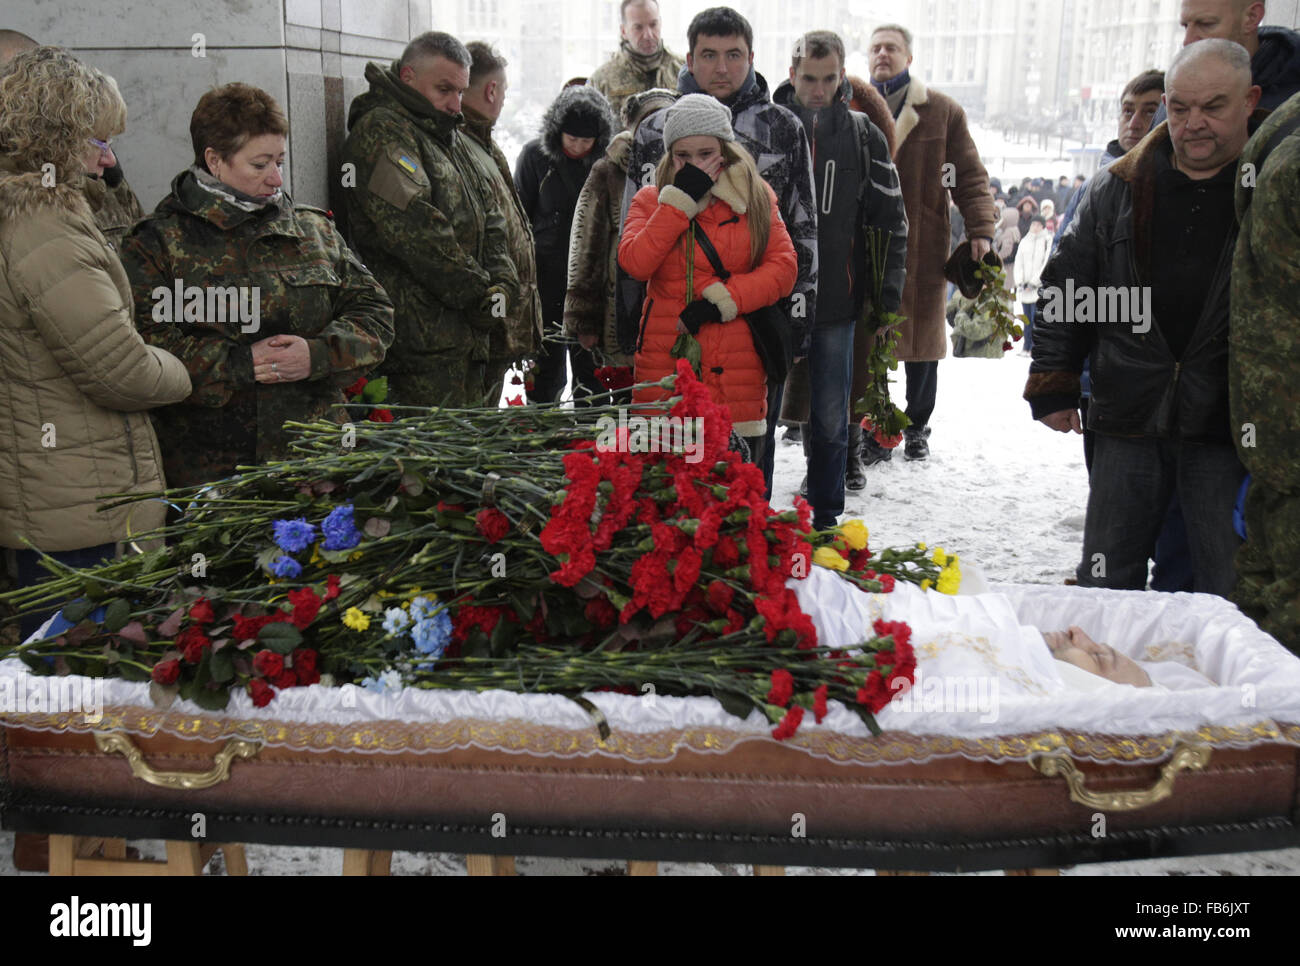 Kiev, Ukraine. 4th Dec, 2015. A ceremony of farewell at the Independence Square in Kiev. The Ukrainian soldier Oleksandr - Stock Image